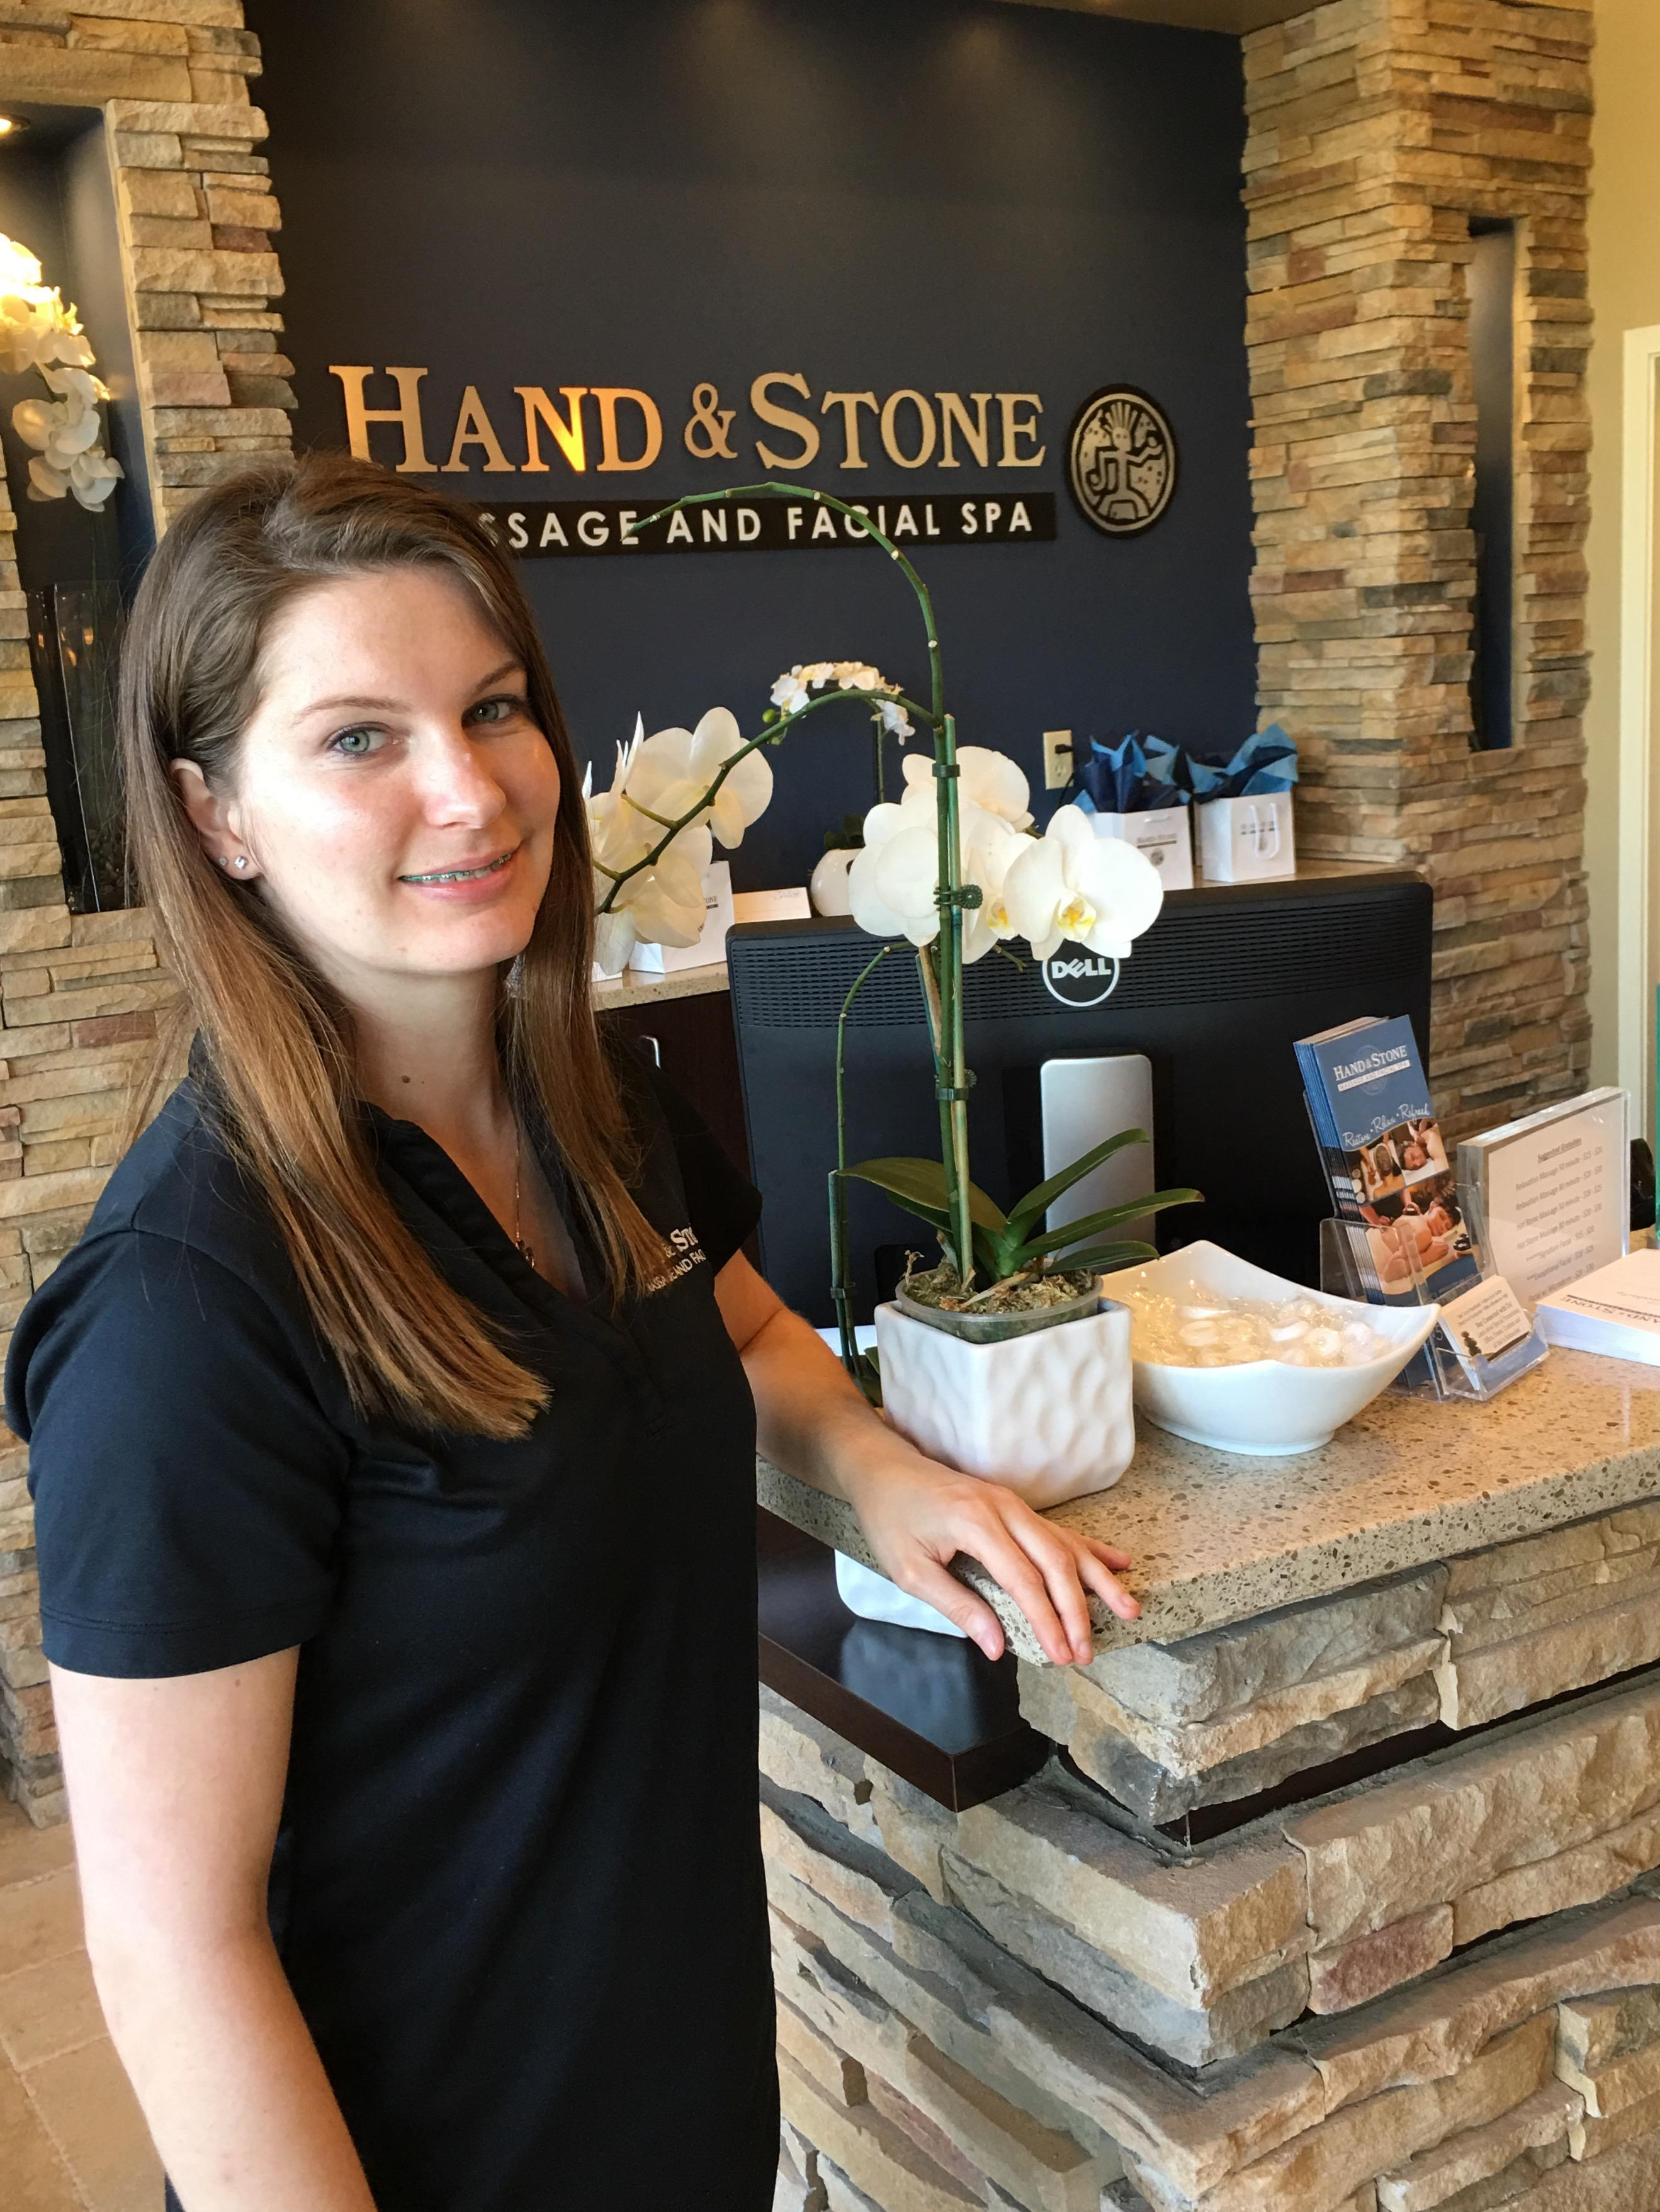 Our Massage is a customized 50 or 80 minute full body Massage that targets your problem areas where stress and tension exist. We offer many different kinds of Massage from our Signature Hot Stone, our NEW Himalayan Salt Stone Massage to Sports to Pregnancy! Call our front desk to get more details.